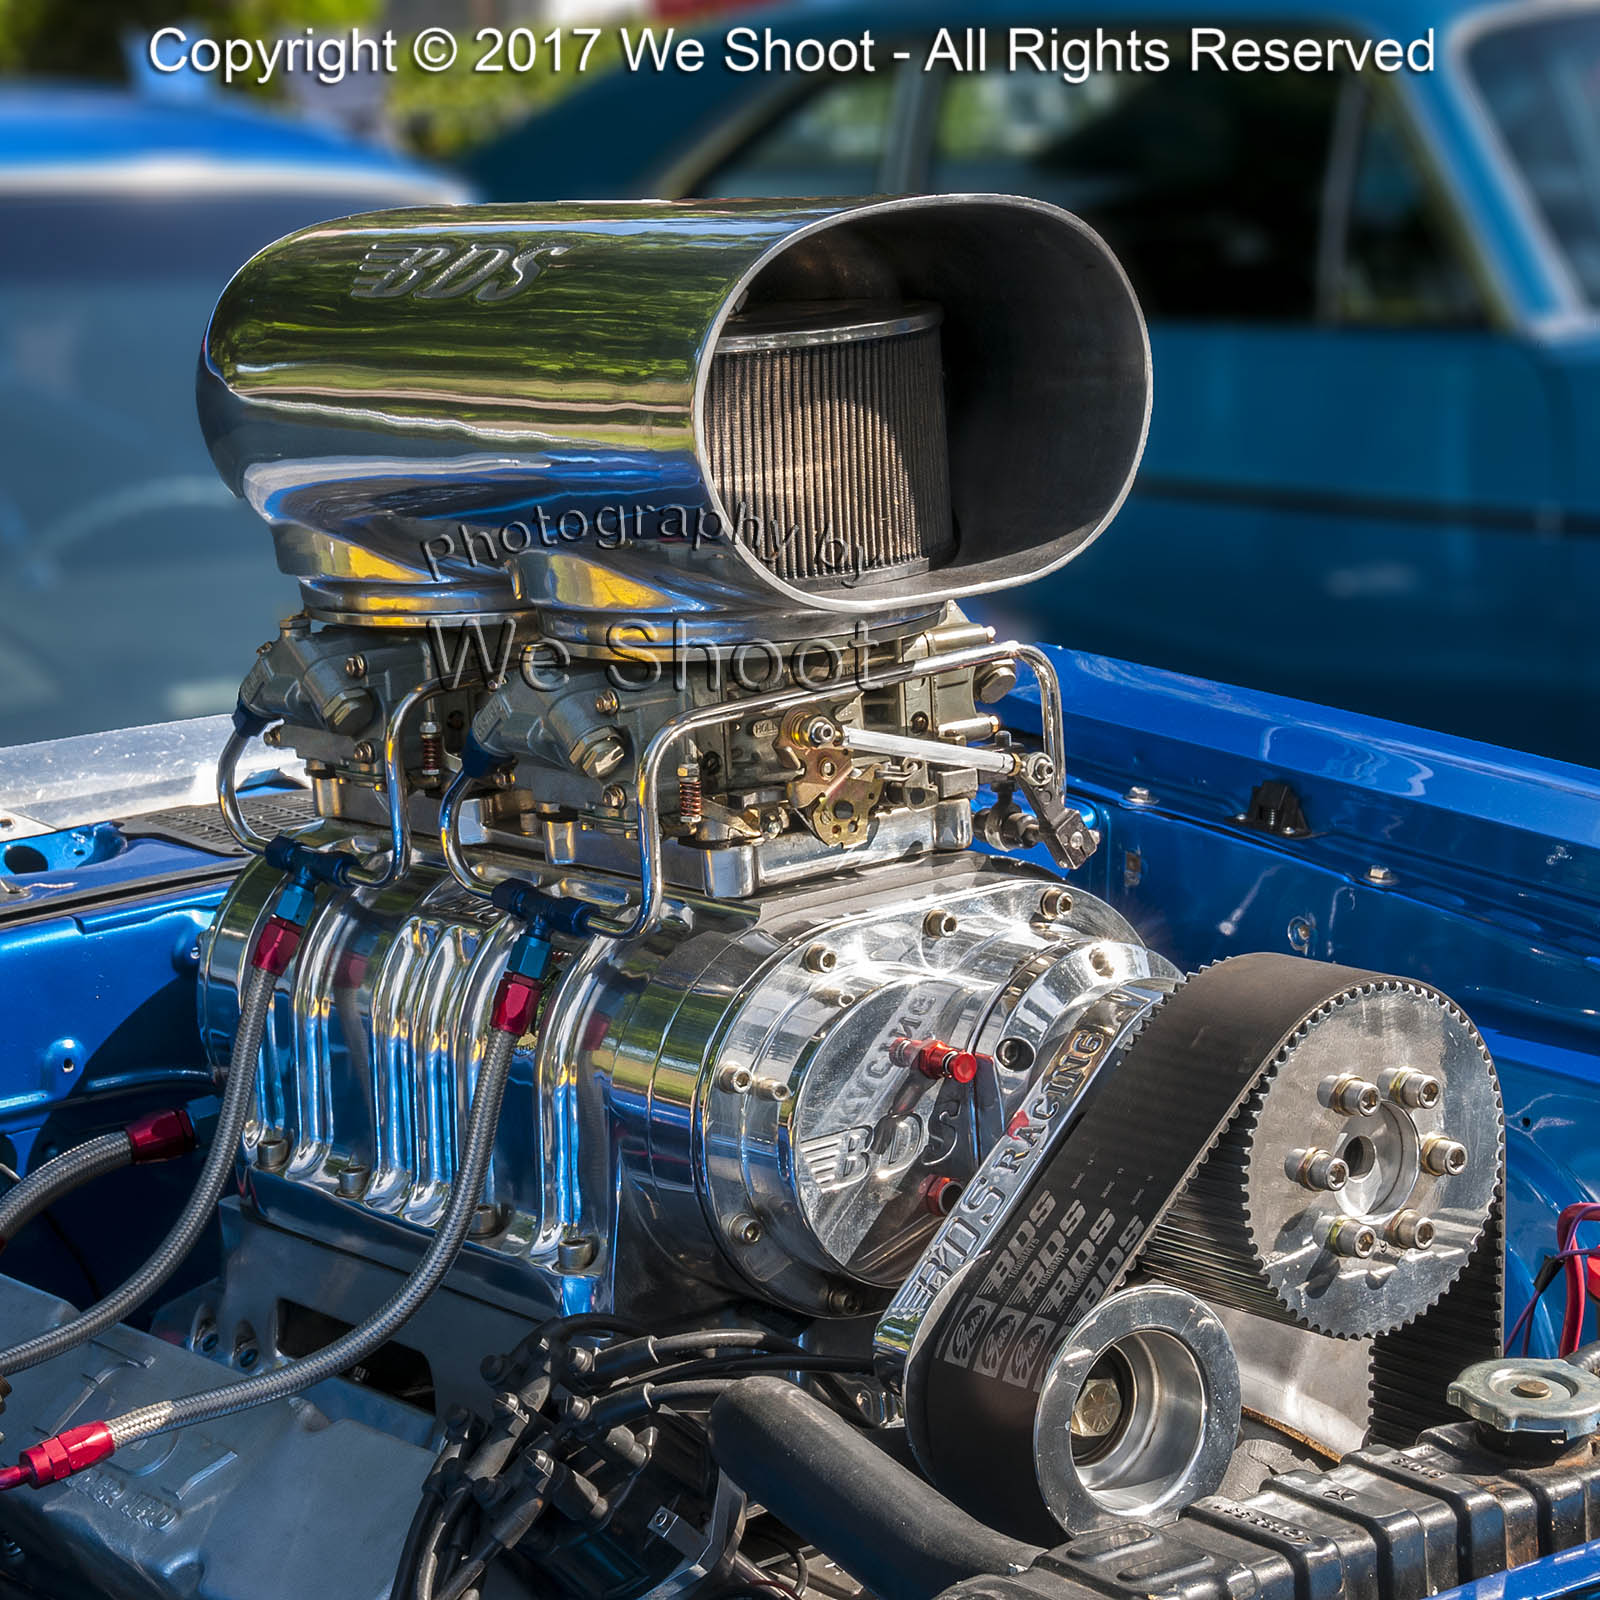 weshoot com » carburetor